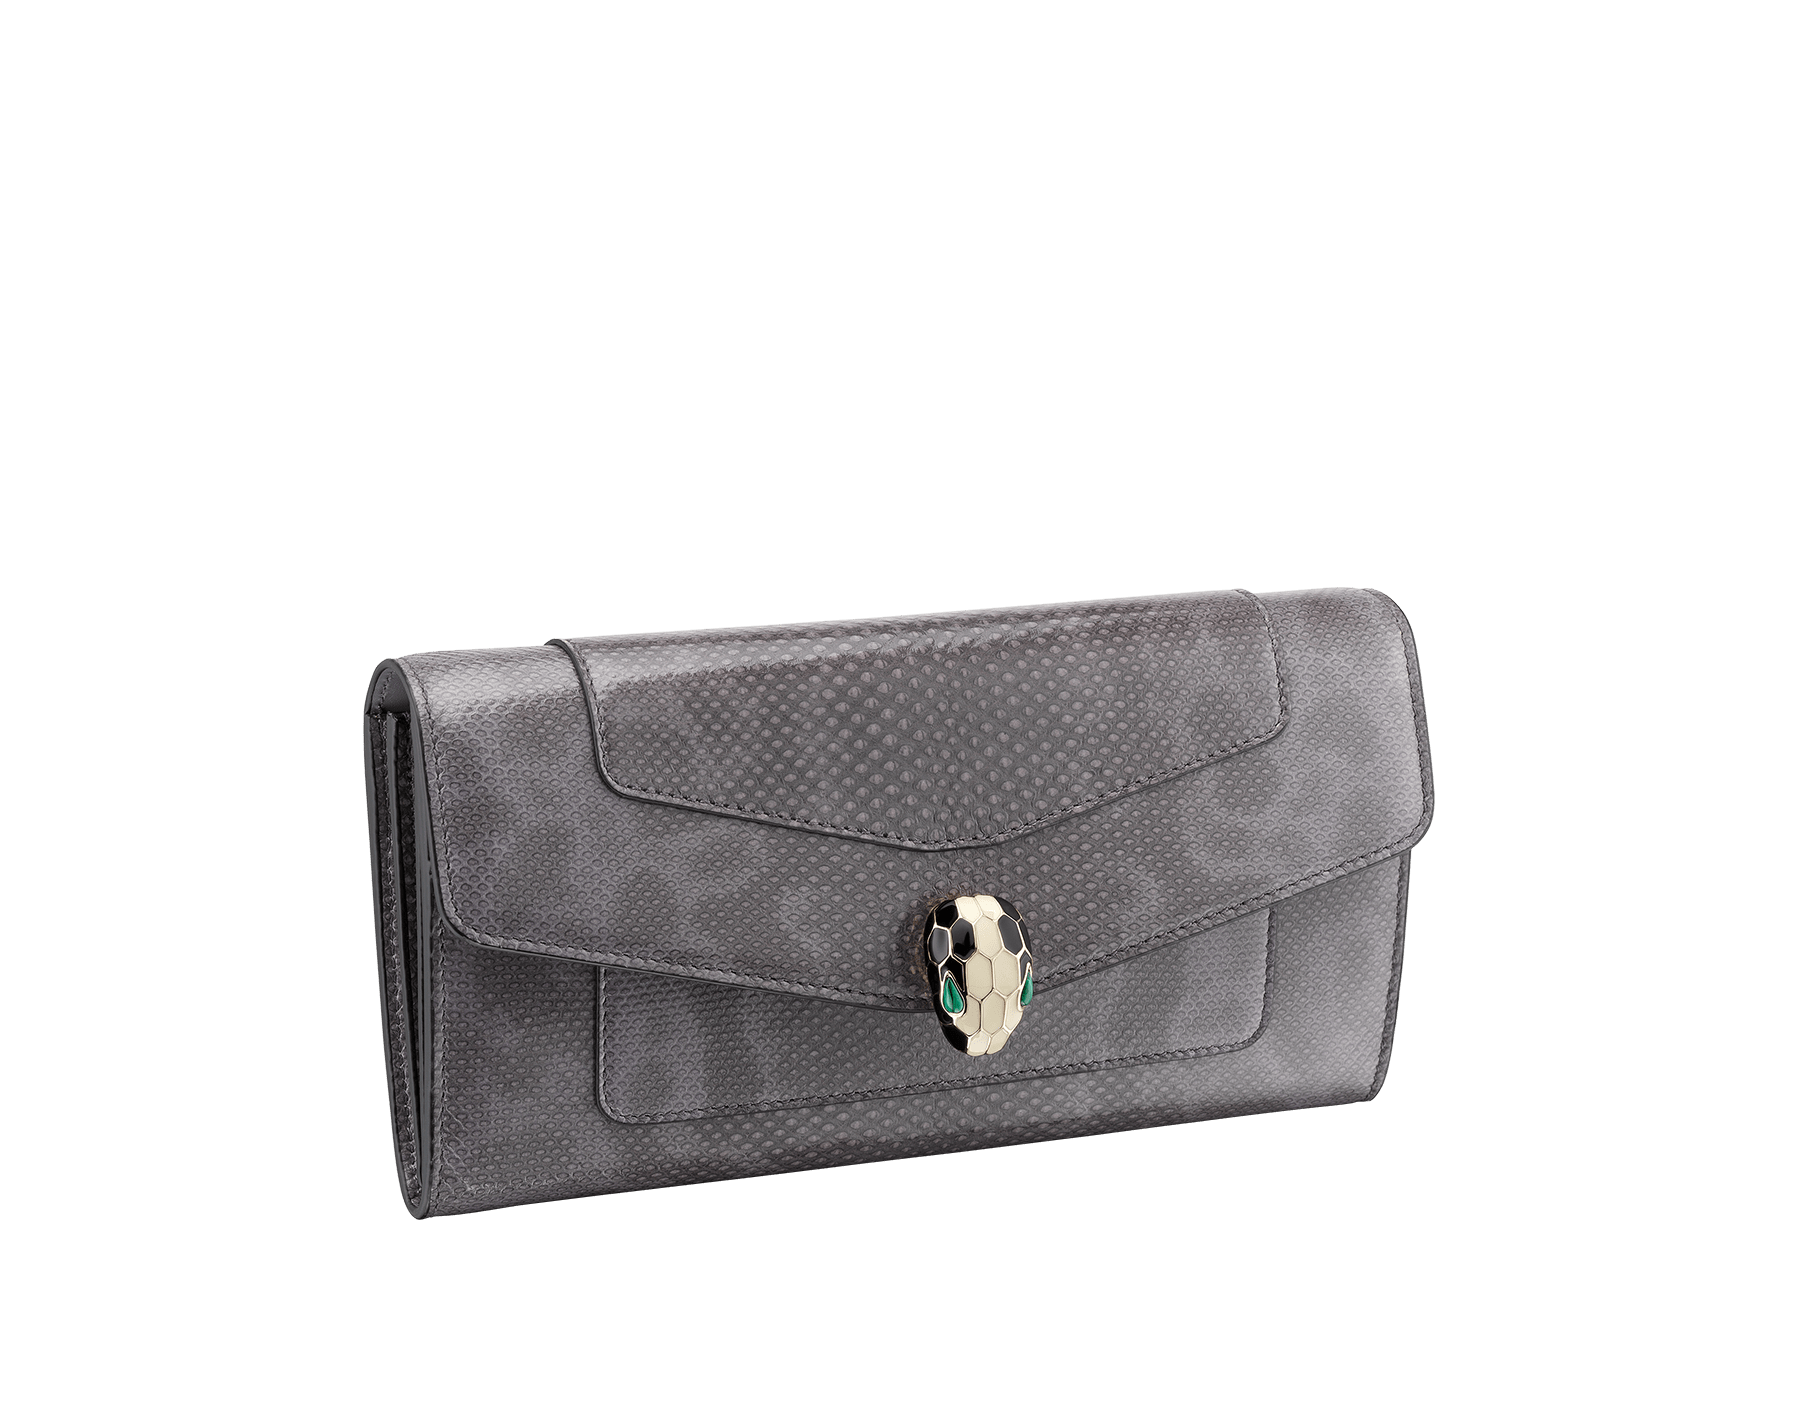 Serpenti Forever wallet pochette in rhapsody opal shiny karung skin and calf leather. Iconic snakehead stud closure in black and white enamel, with green malachite eyes 287255 image 1